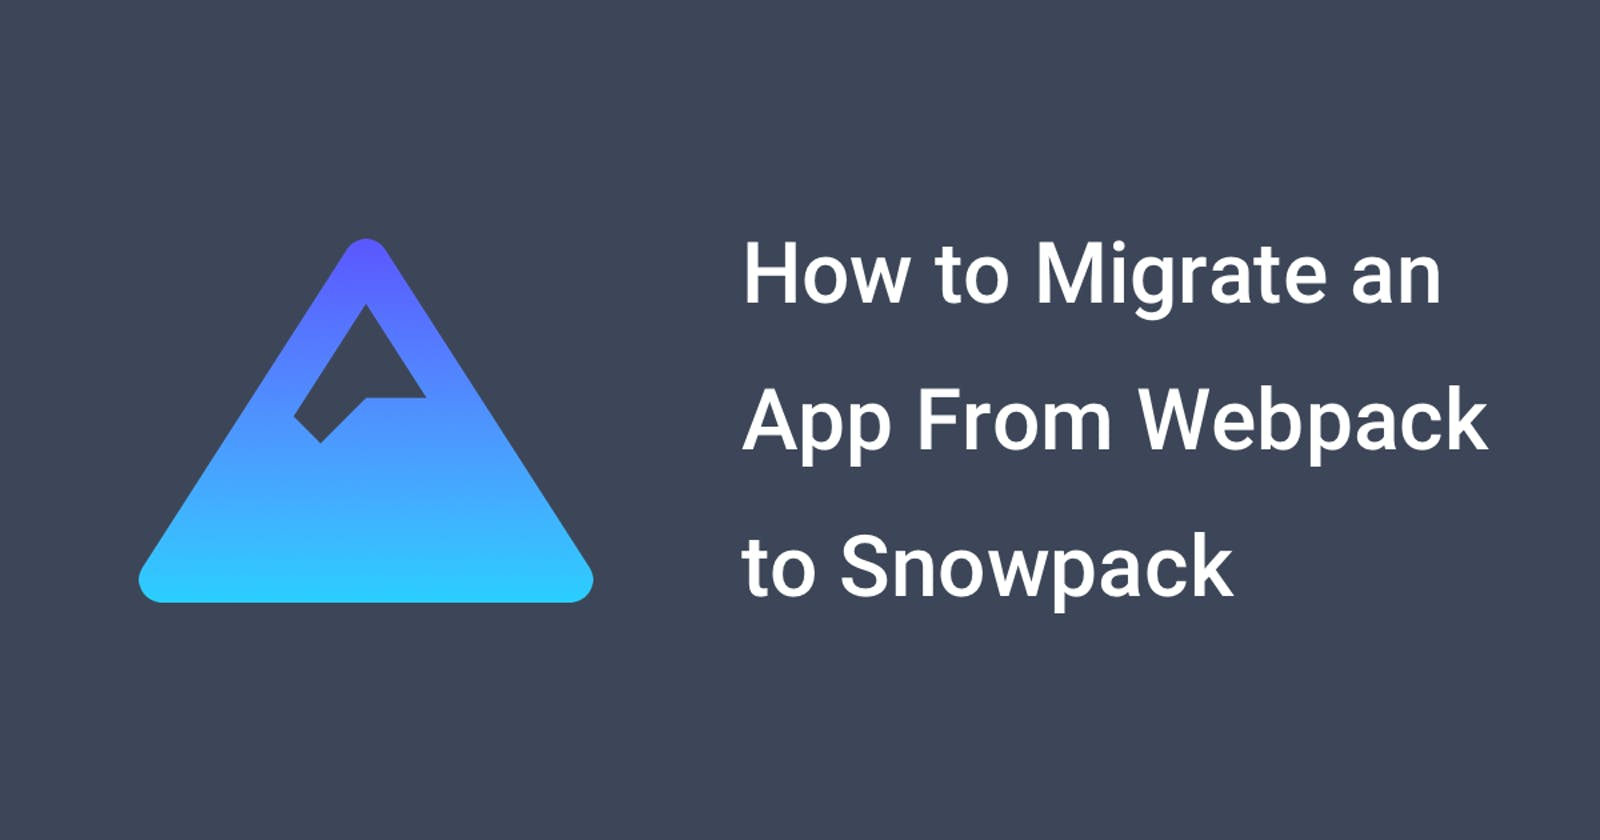 How to Migrate an App From Webpack to Snowpack